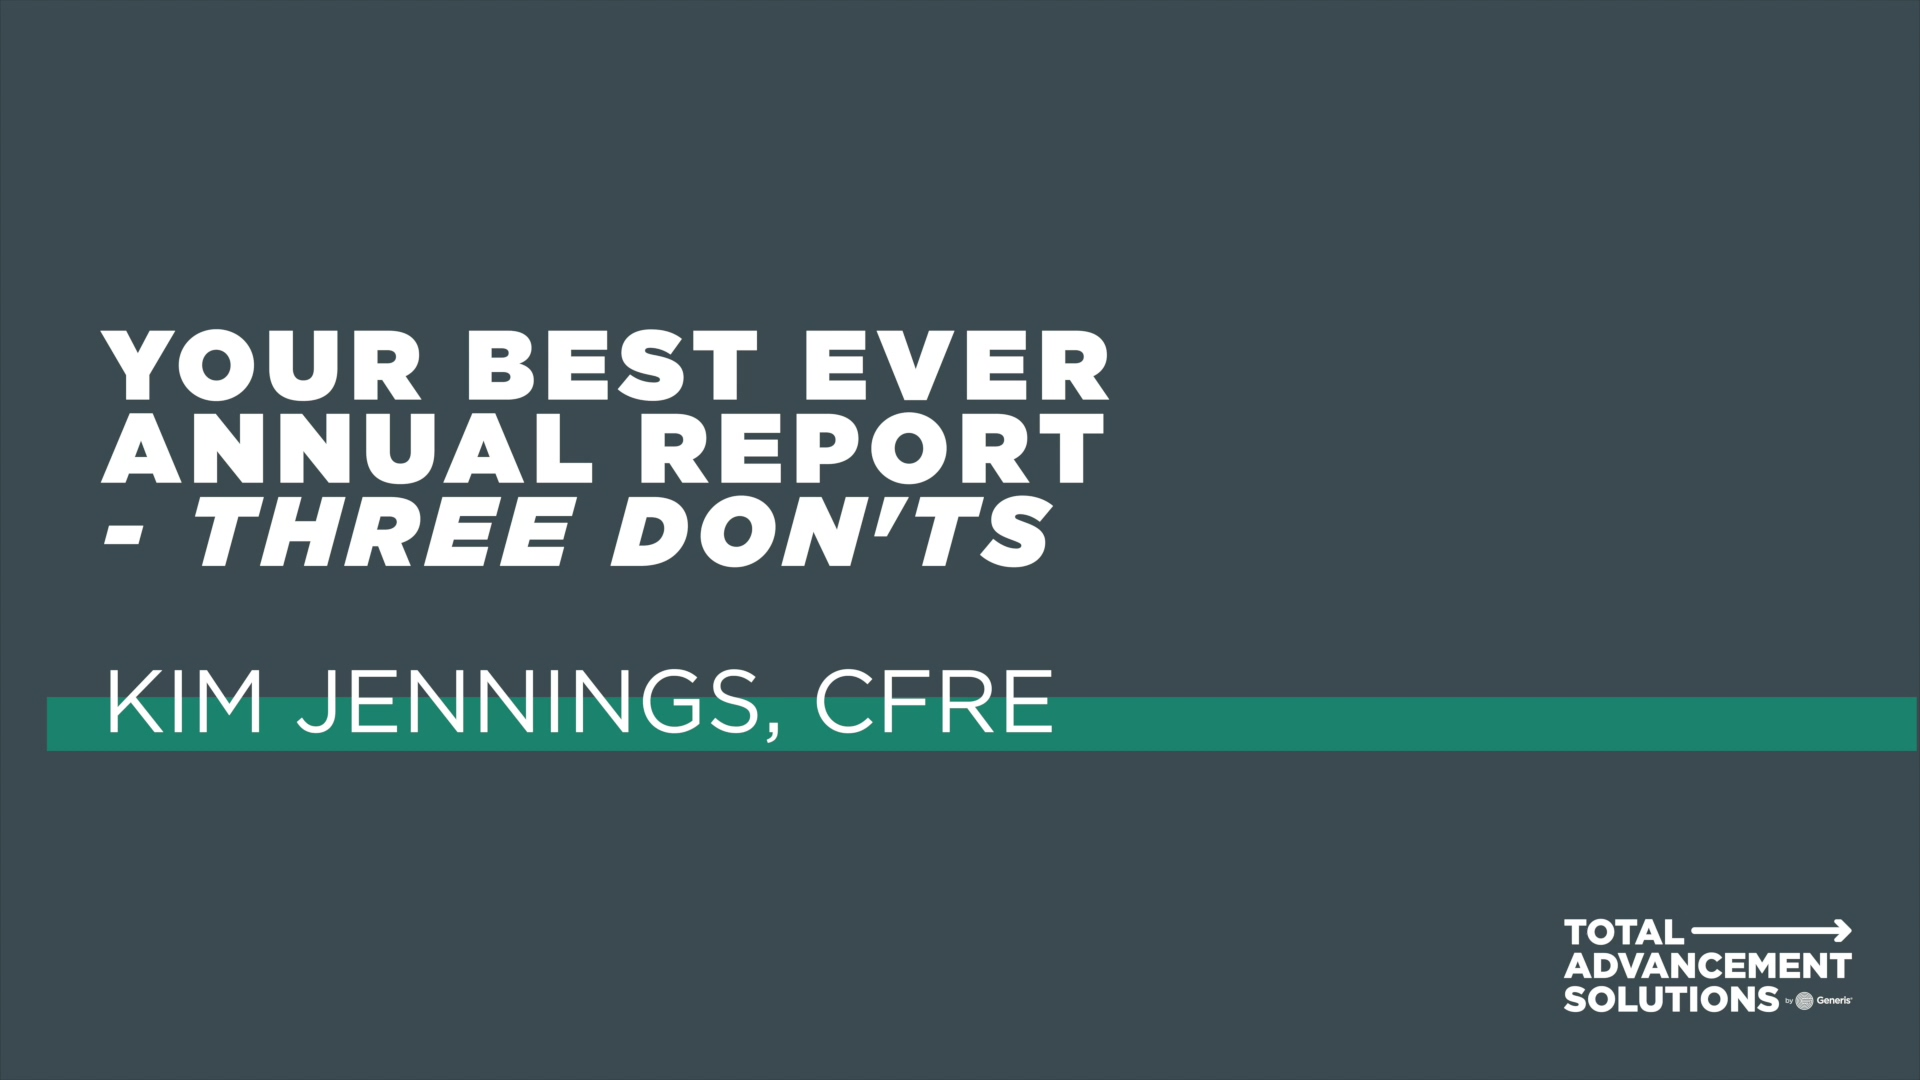 Your Best Ever Annual Report - Three Don'ts